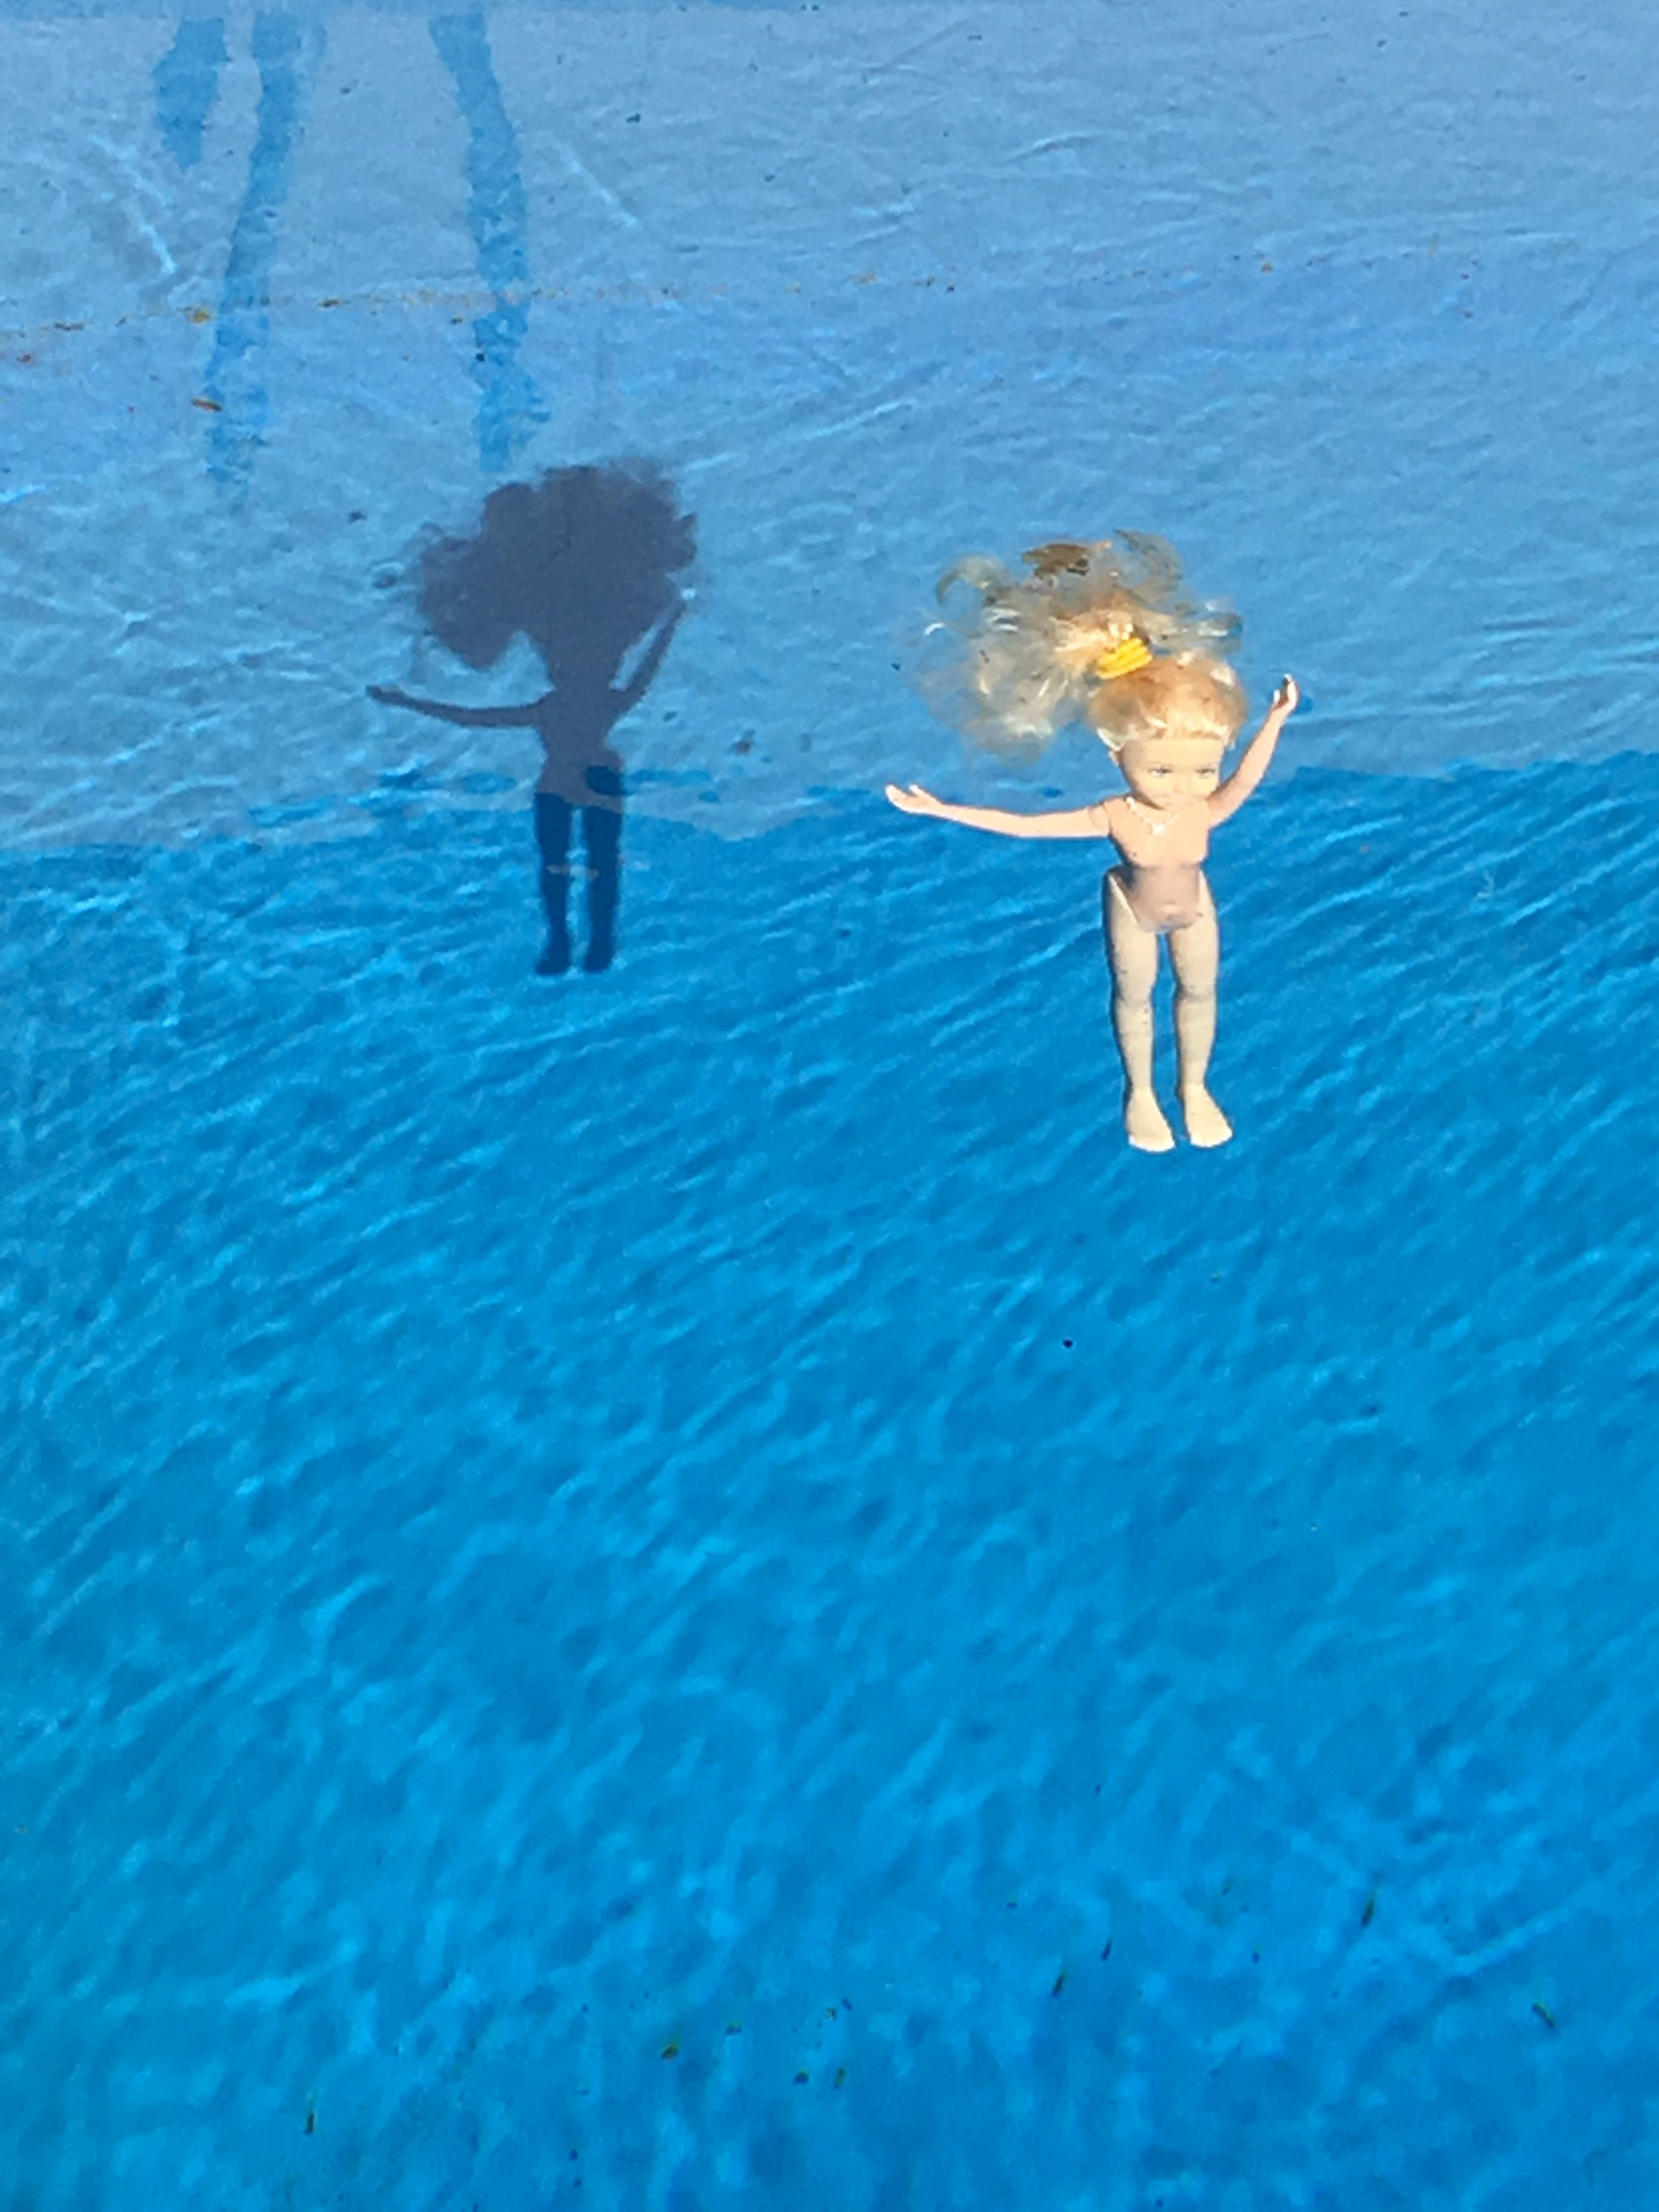 Come on Barbie Let's Go Party 2016  , detail, 40 Barbies in suburban swimming pool.